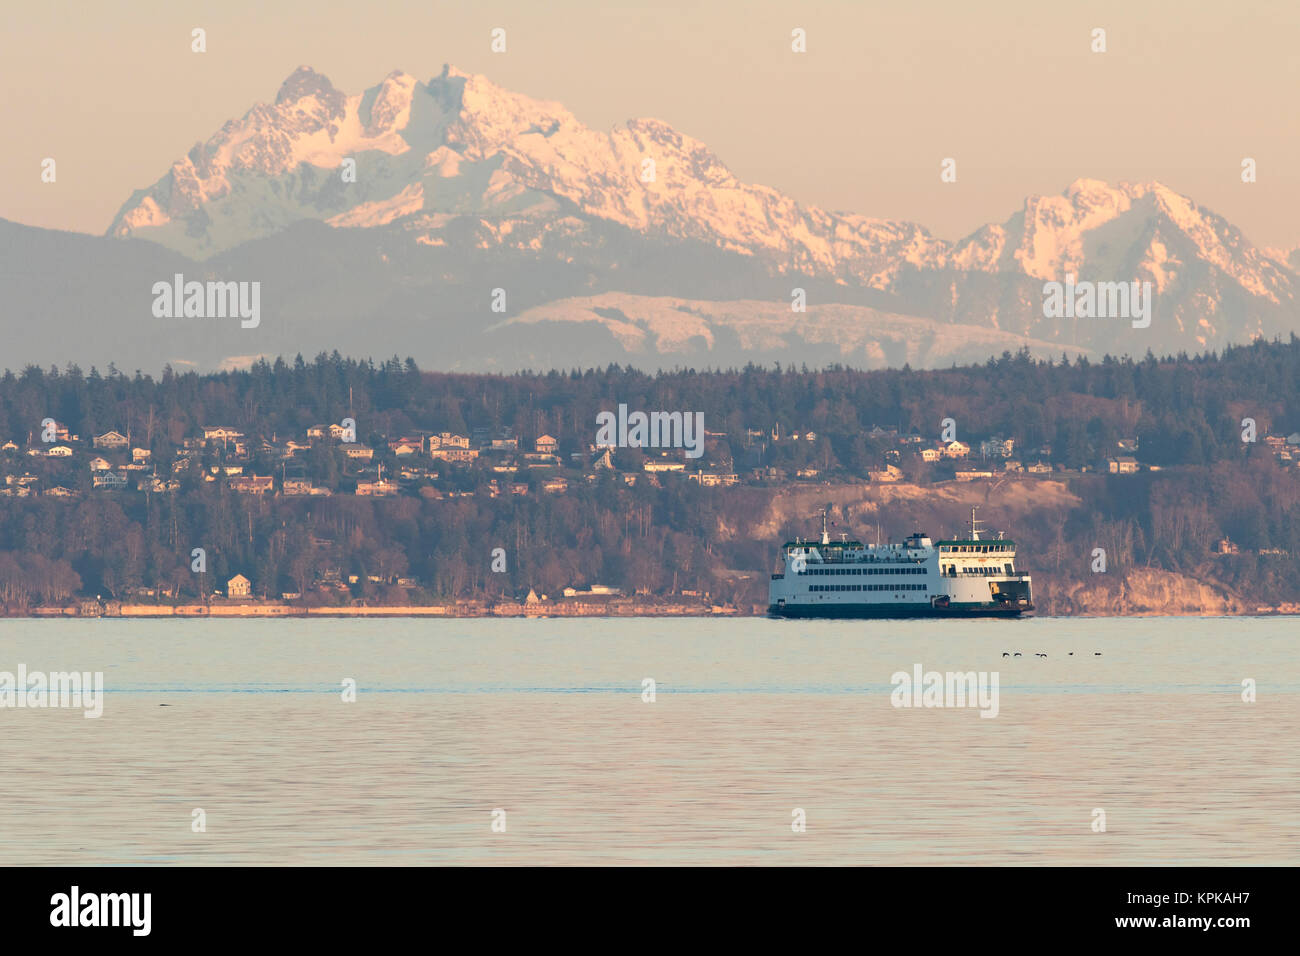 Washington State Ferry and sunset colors on Cascade Mountains and Whidbey Island. - Stock Image